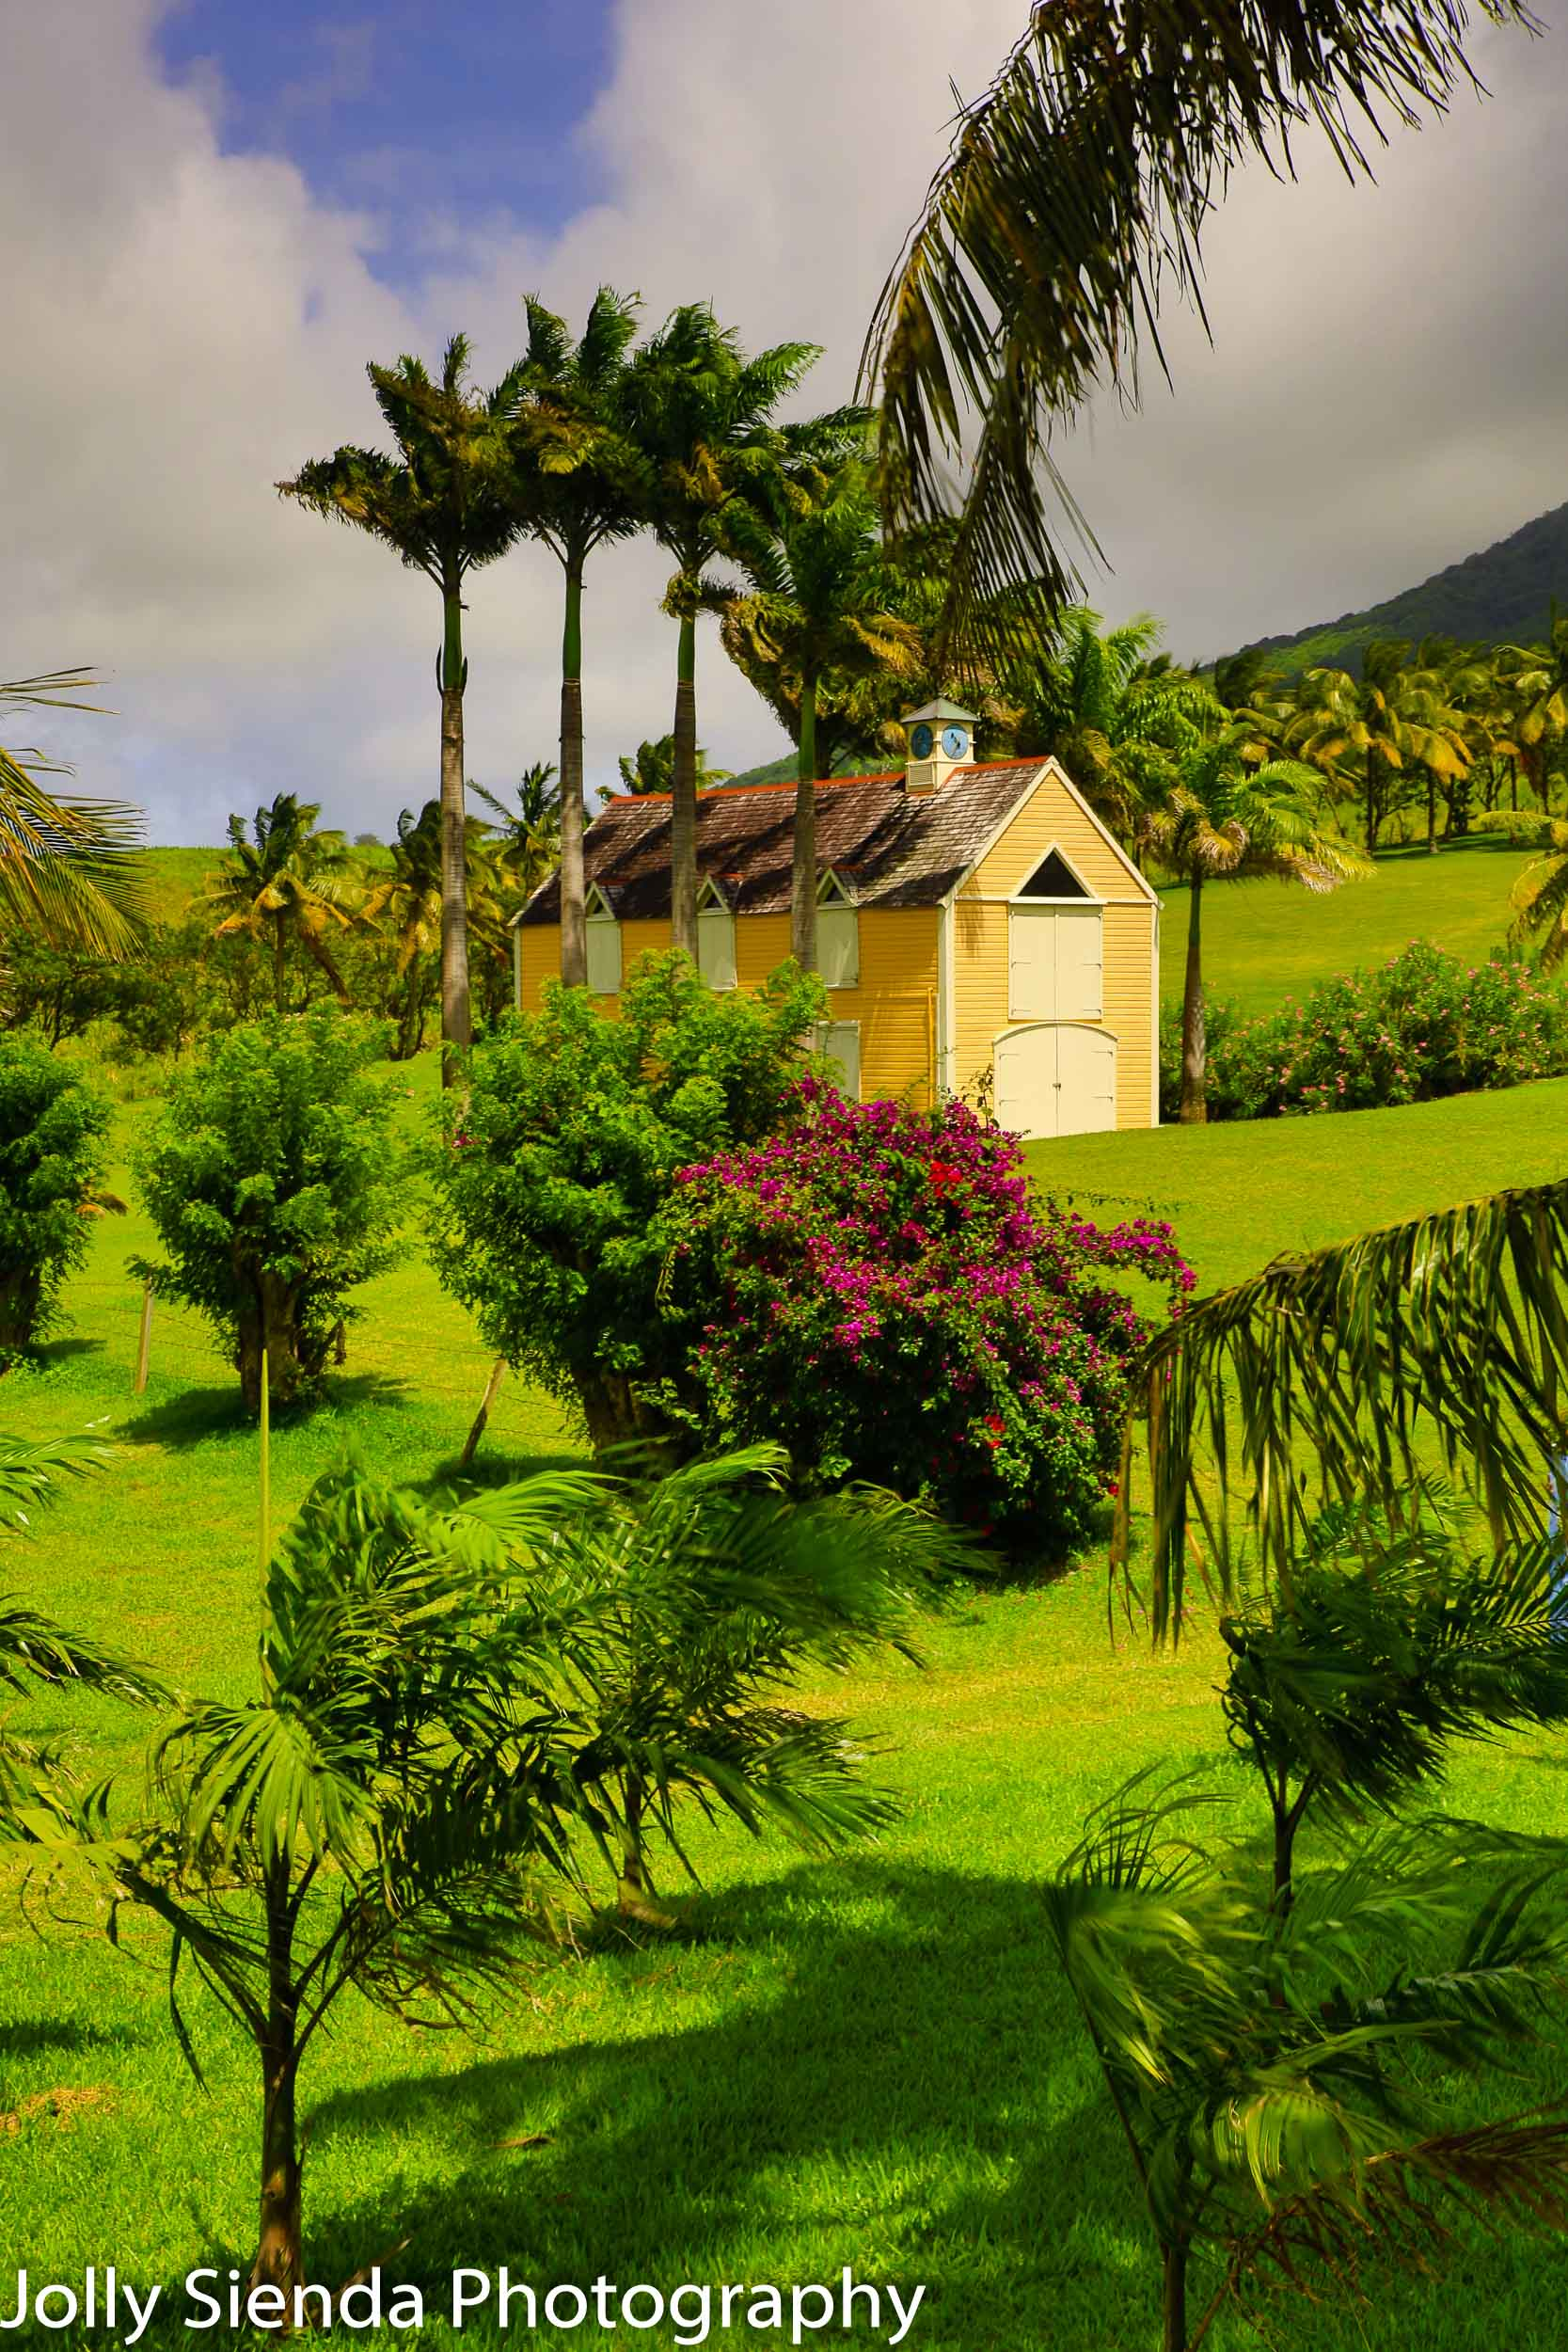 The Yellow Caribbean Barn on St. Kitts